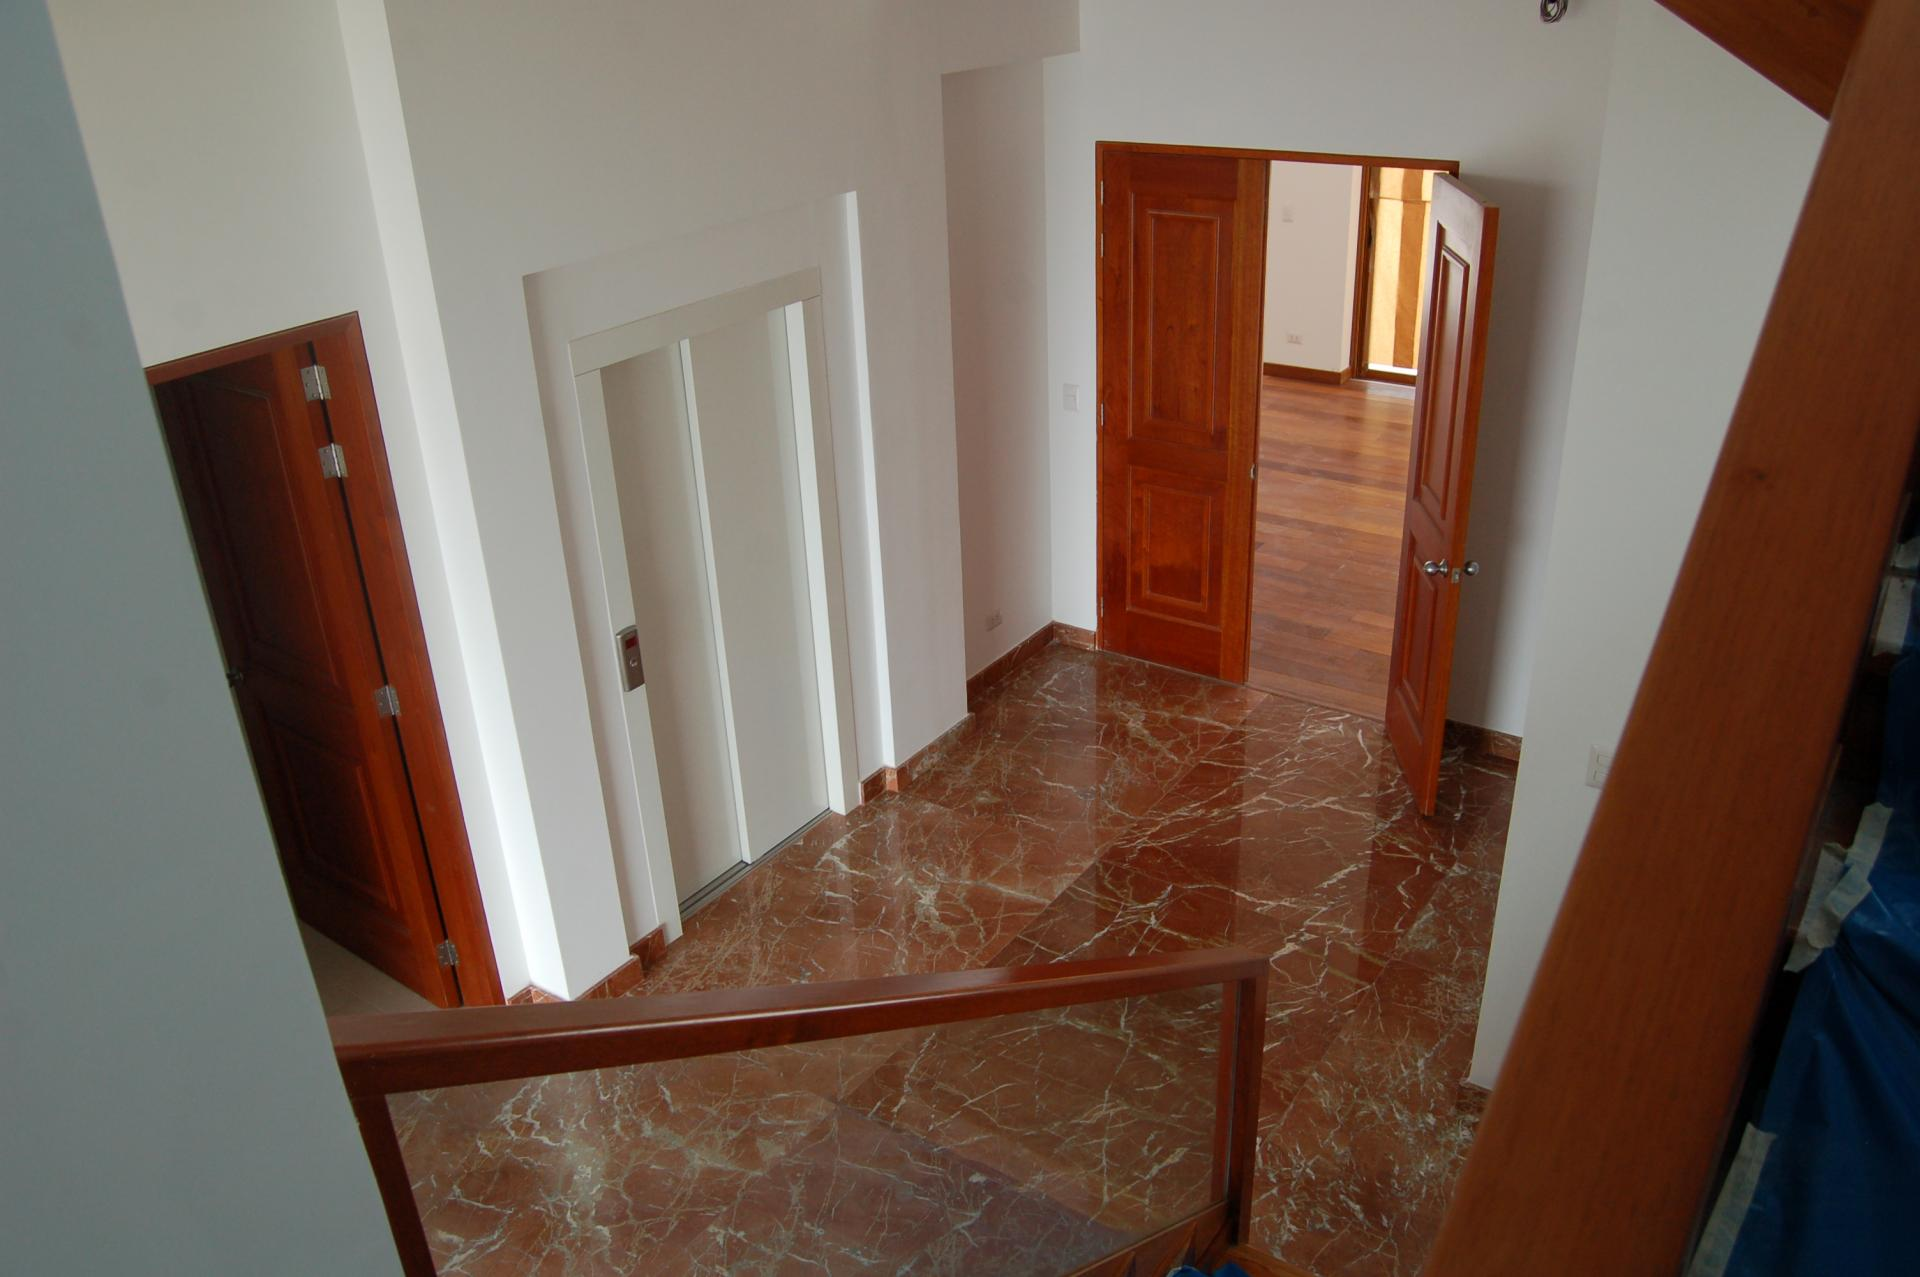 LIMA, SAN ISIDRO, 4 BED TRIPLEX PENTHOUSE, FOR SALE